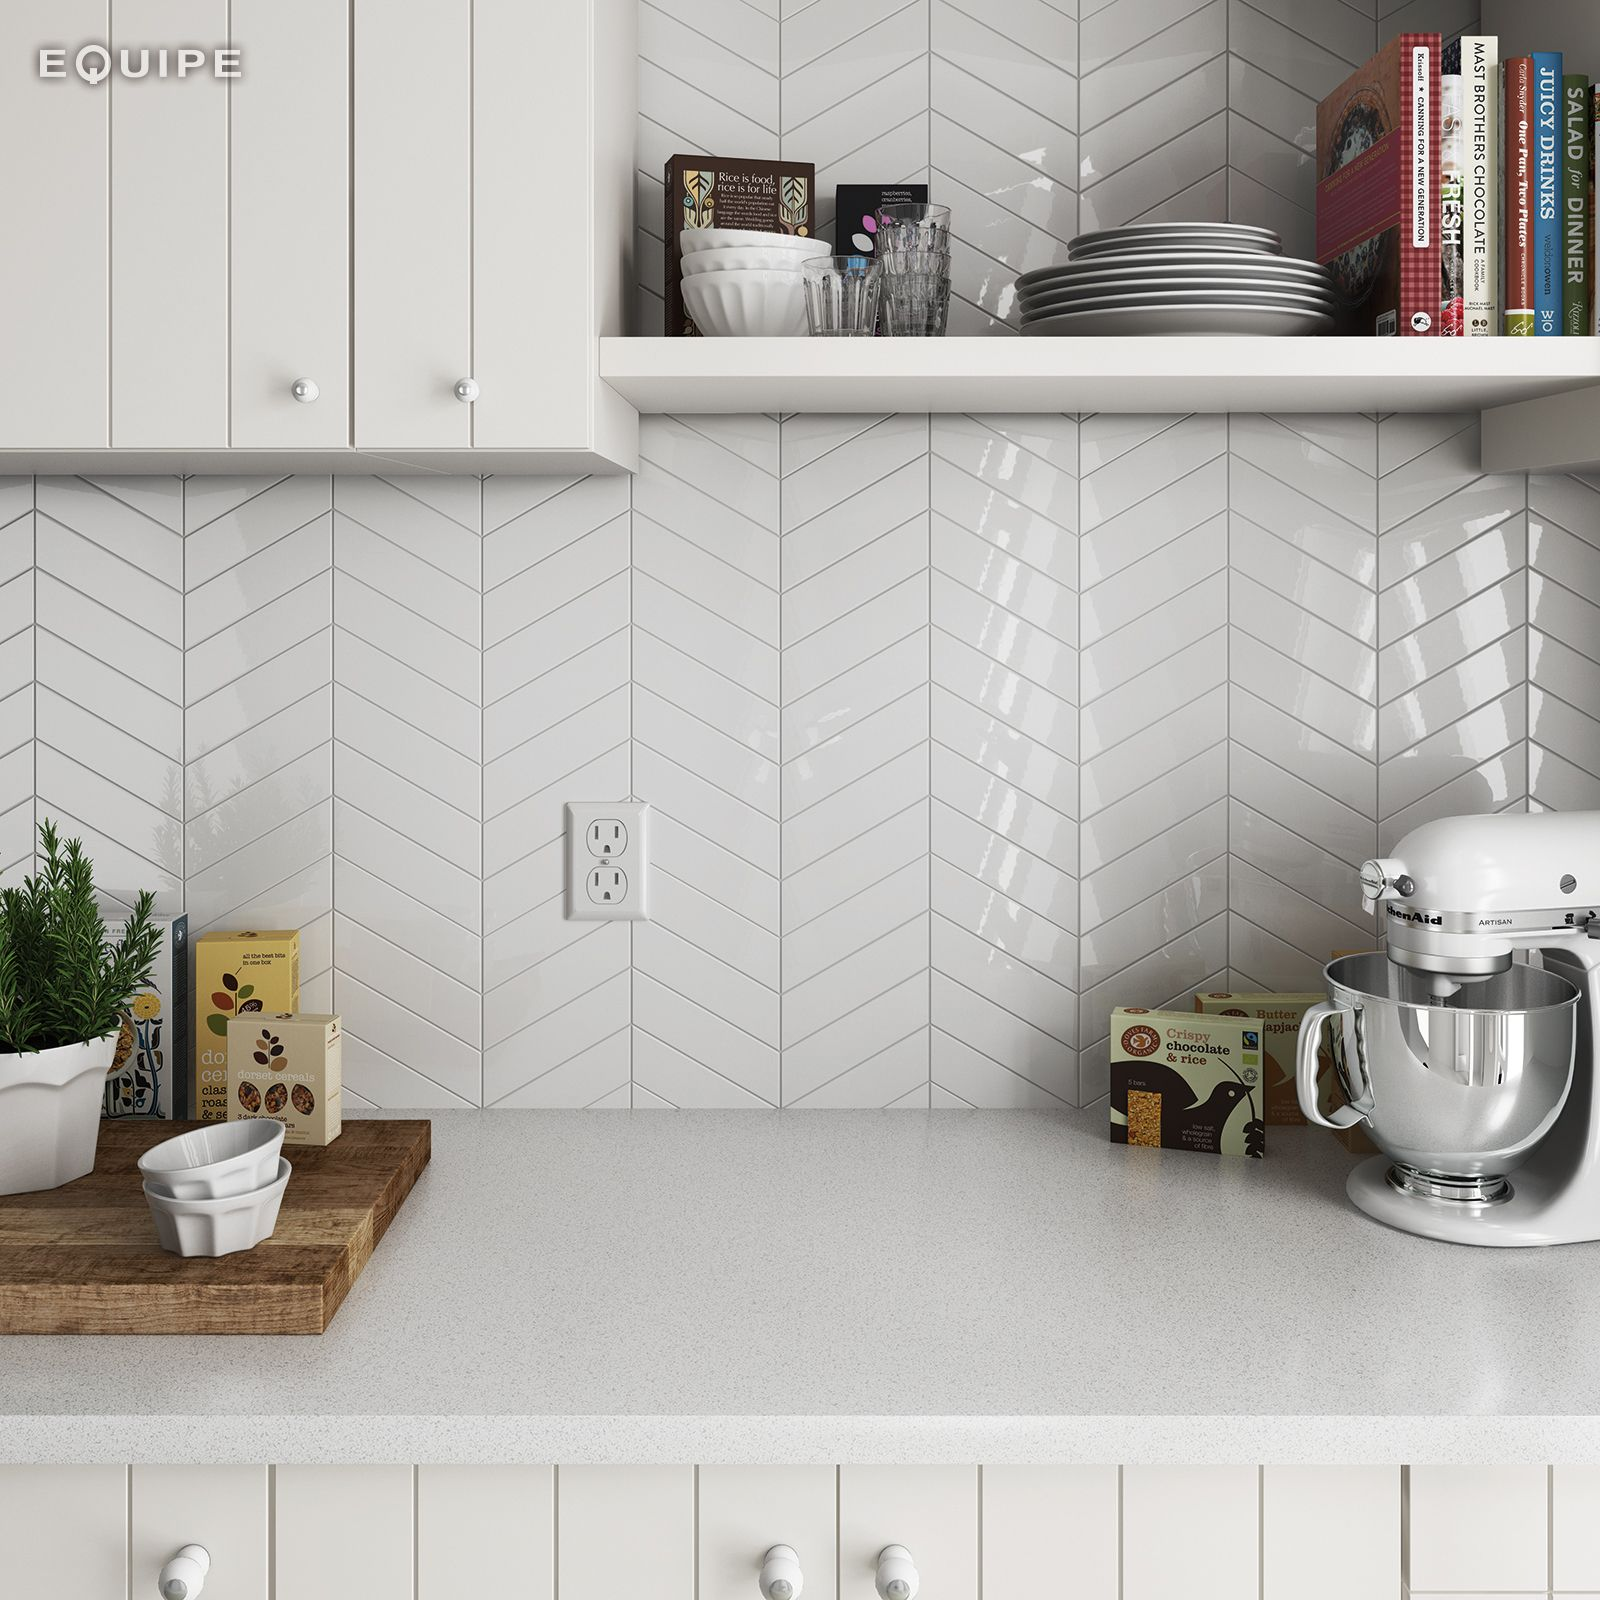 Kitchen Wall Tile Backsplash: These New Chevron Wall Tiles Would Make A Stunning